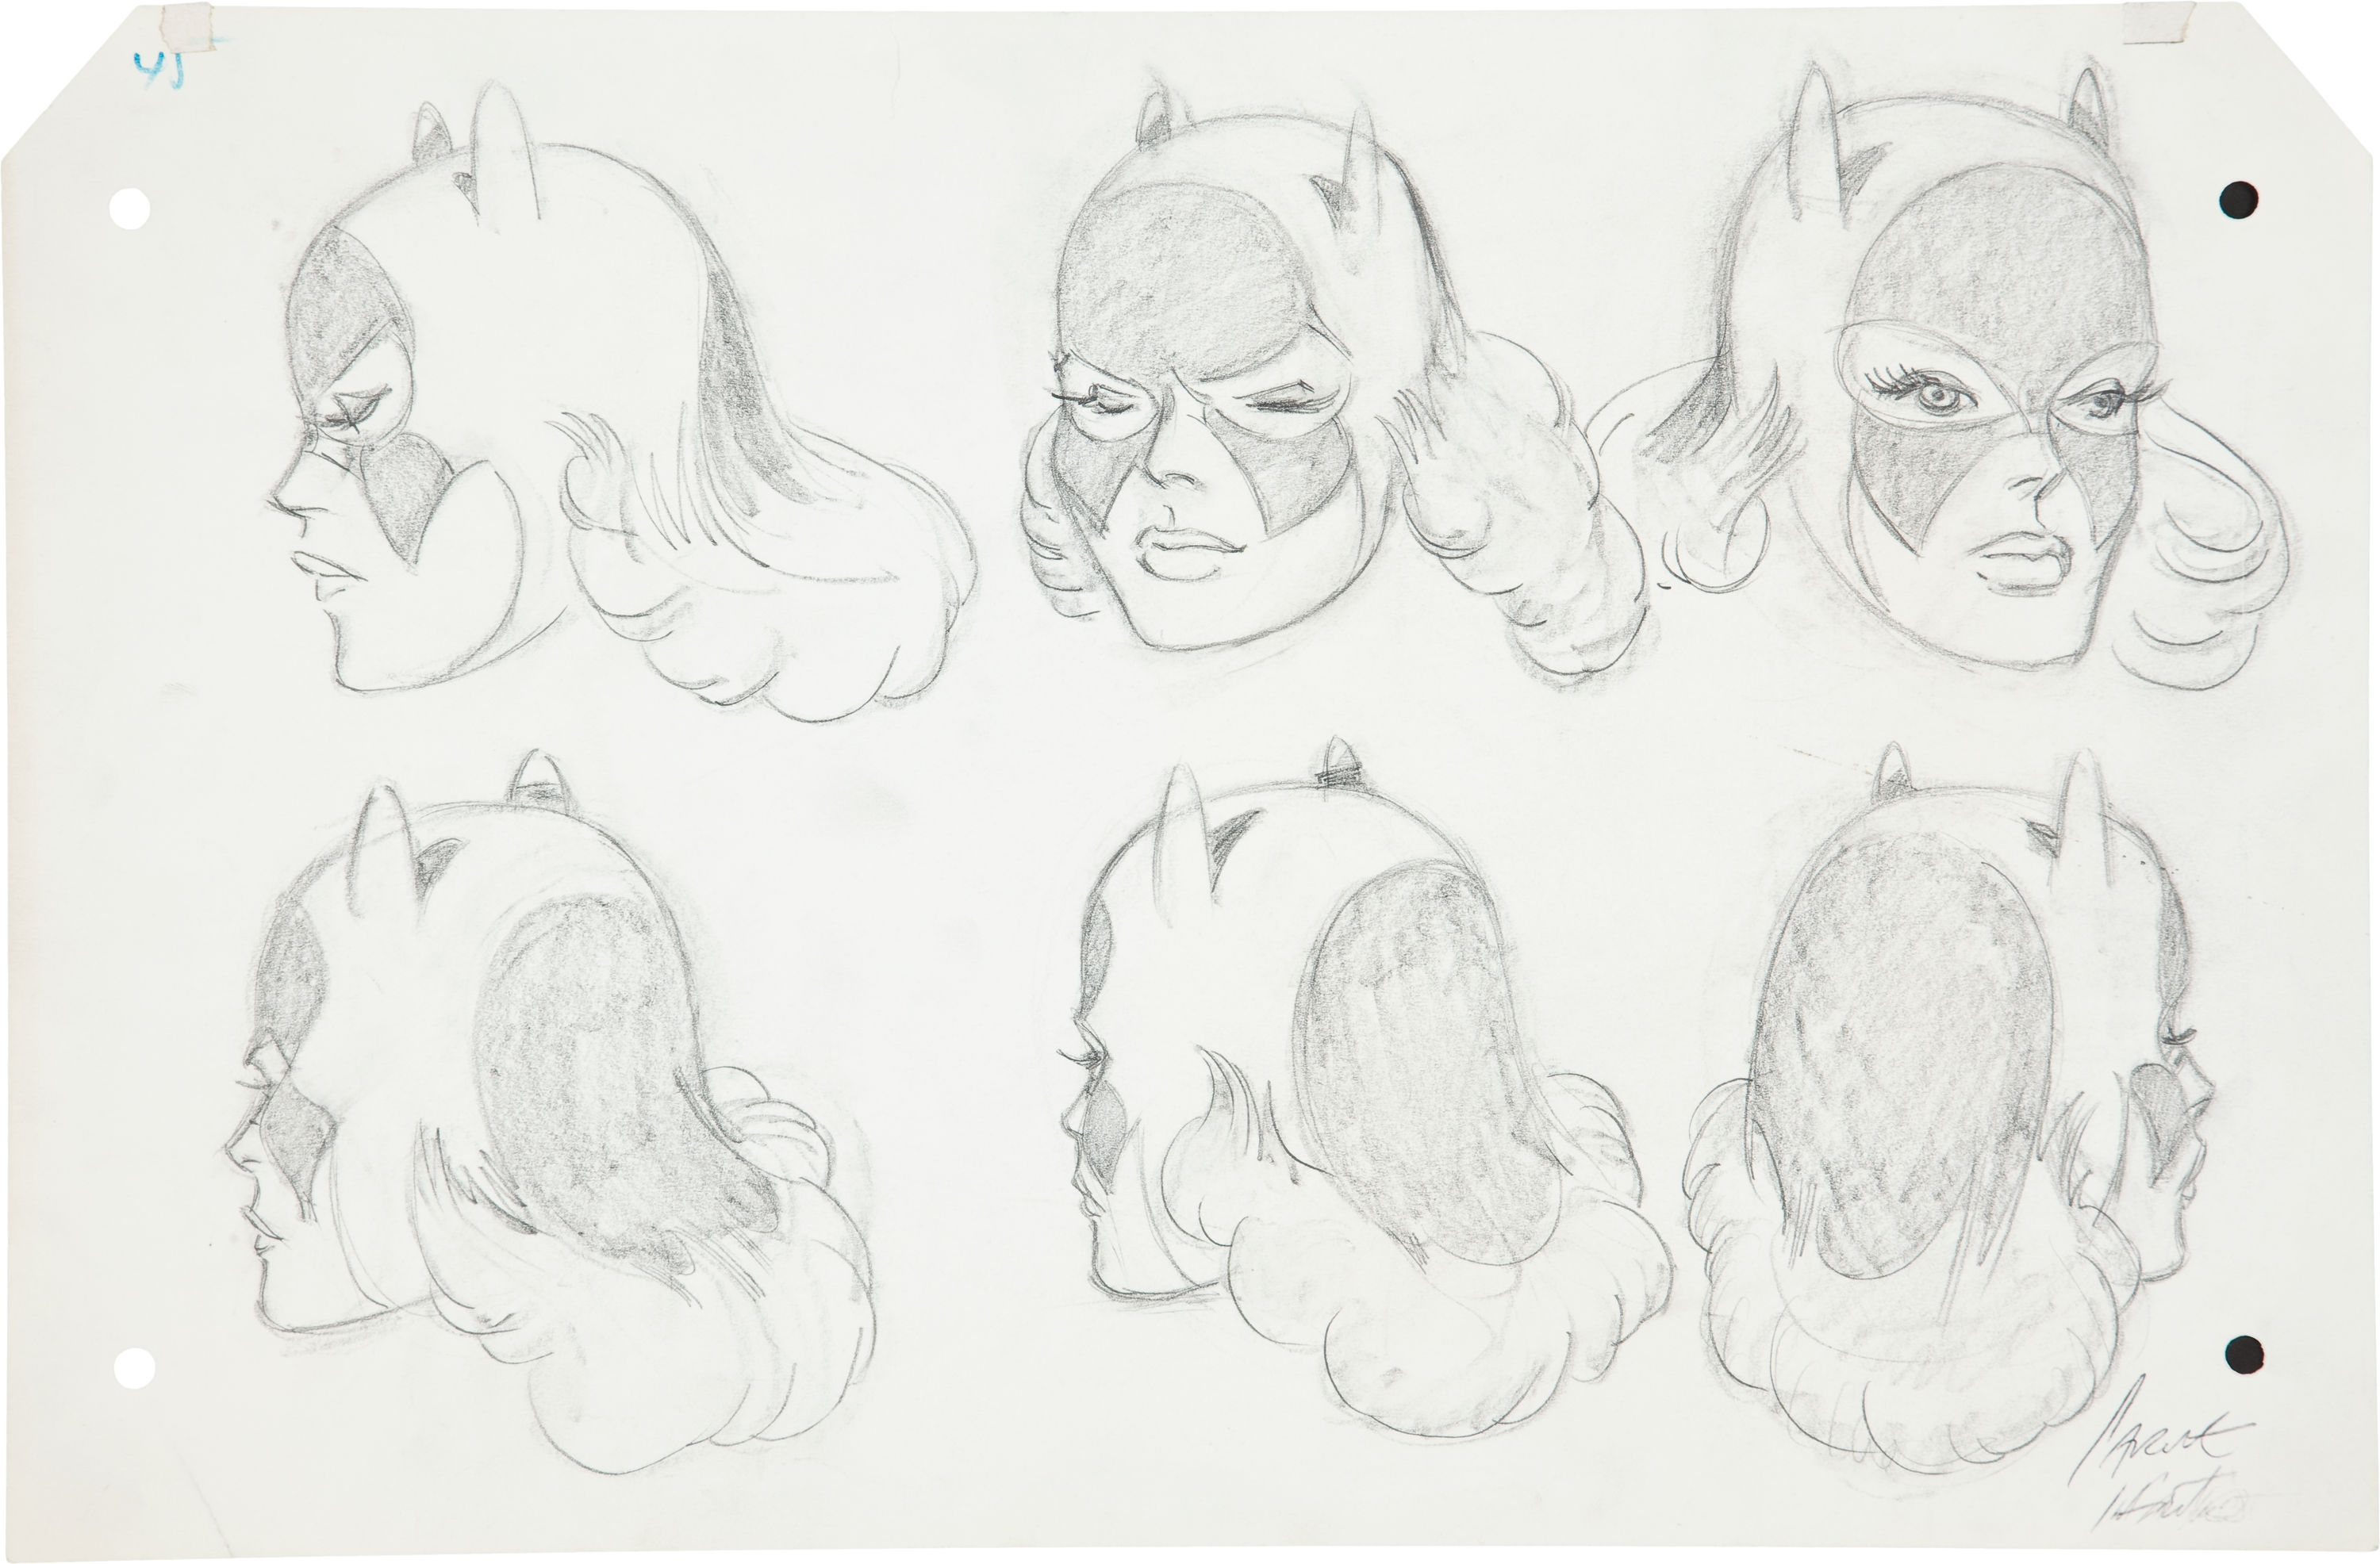 Silver Age Batgirl Concept Art by Carmine Infantino Sold for $523